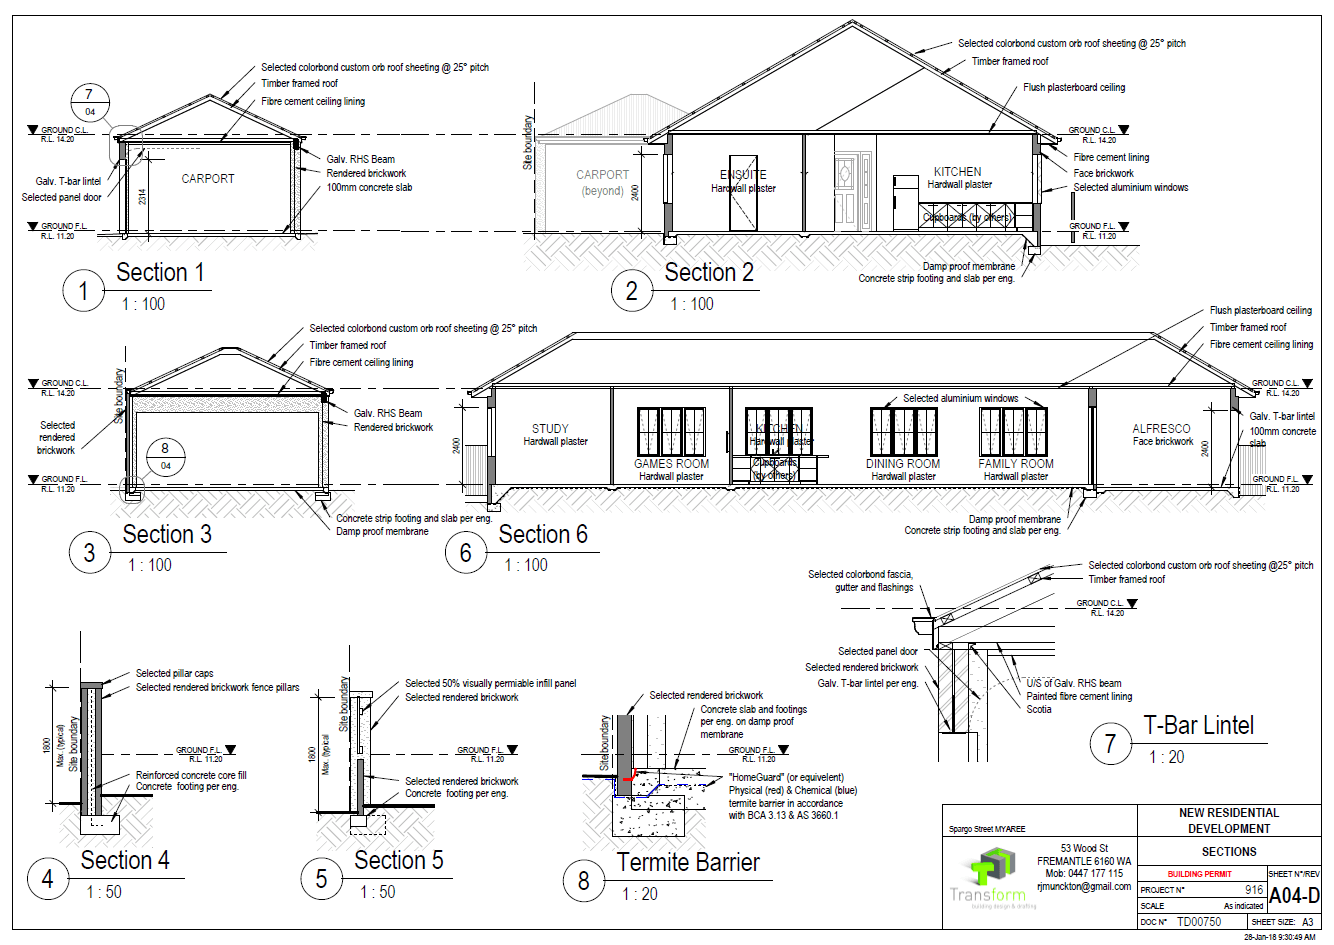 5. Sections Details